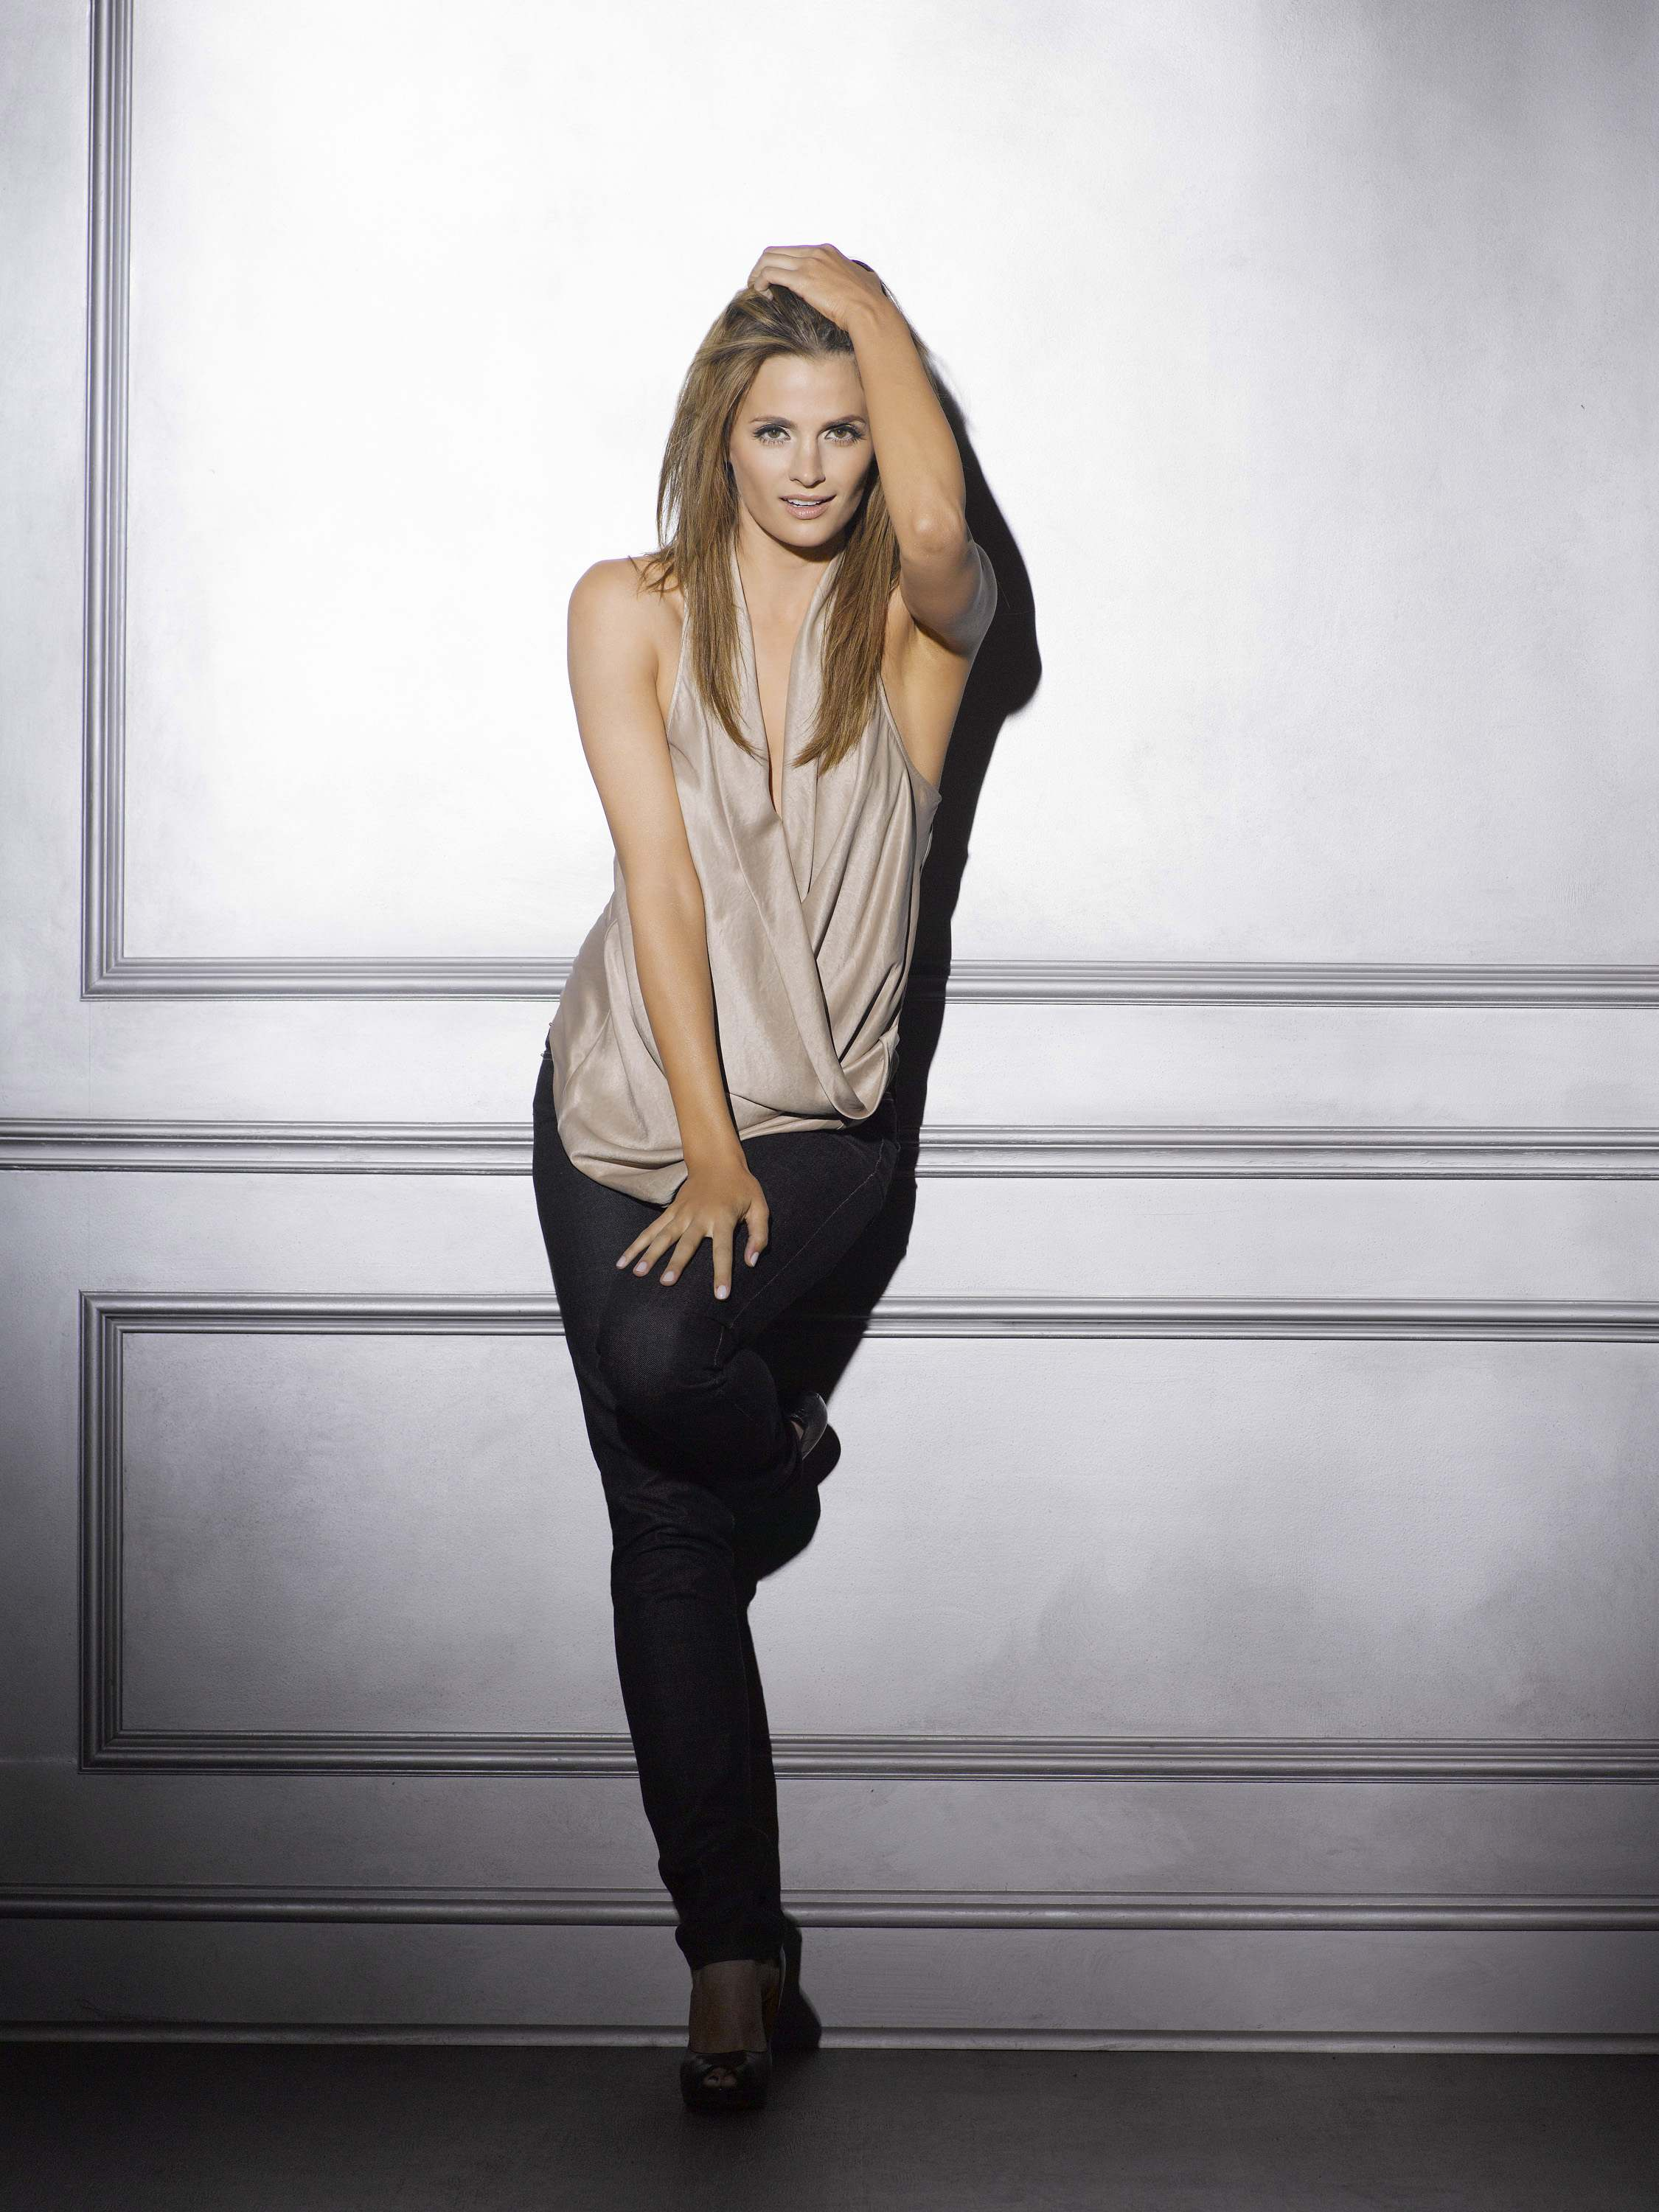 Stana Katic Hot Hd Photoshoot - Facebook Cover - PoPoPics.com